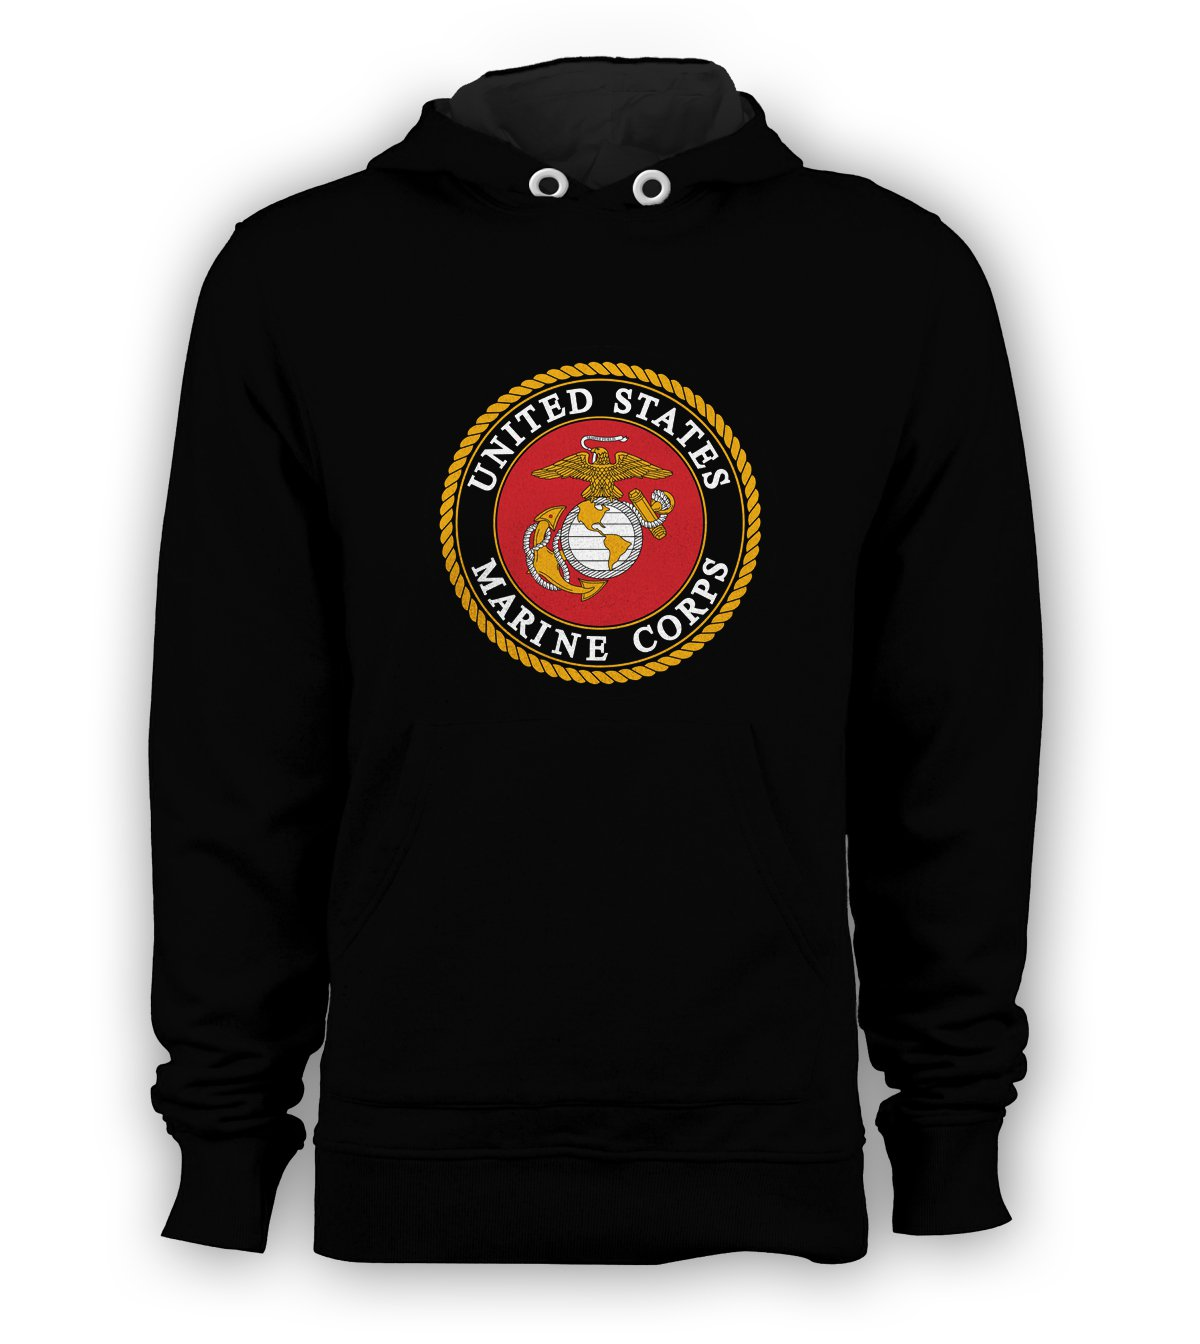 US Marine Corps USMC Pullover Hoodie Men Sweatshirts Size S to 3XL New Black